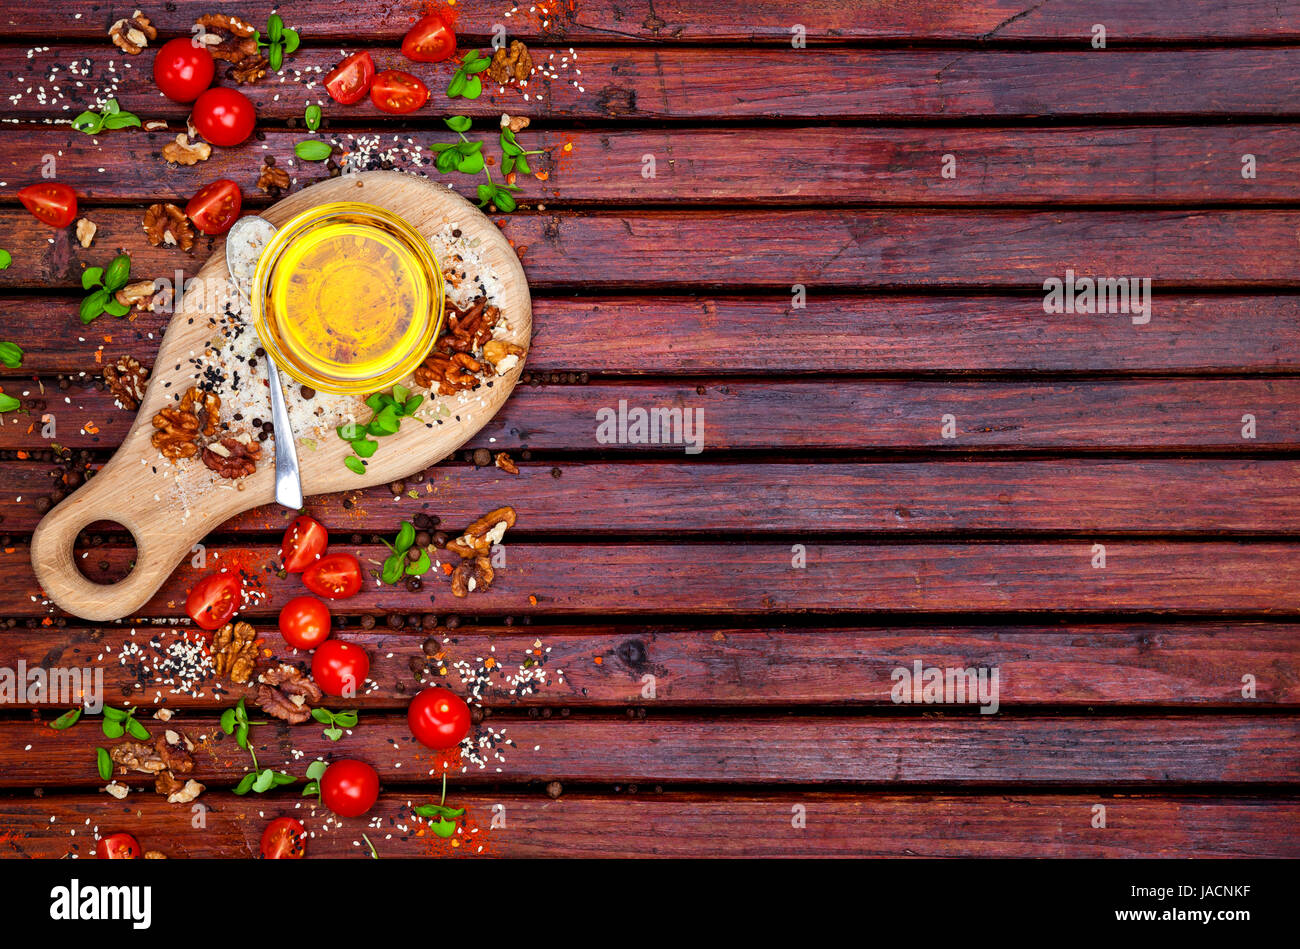 Food background with copy space. Spices, cherry tomatoes, basil and vegetable oil on dark wooden table, top view Stock Photo